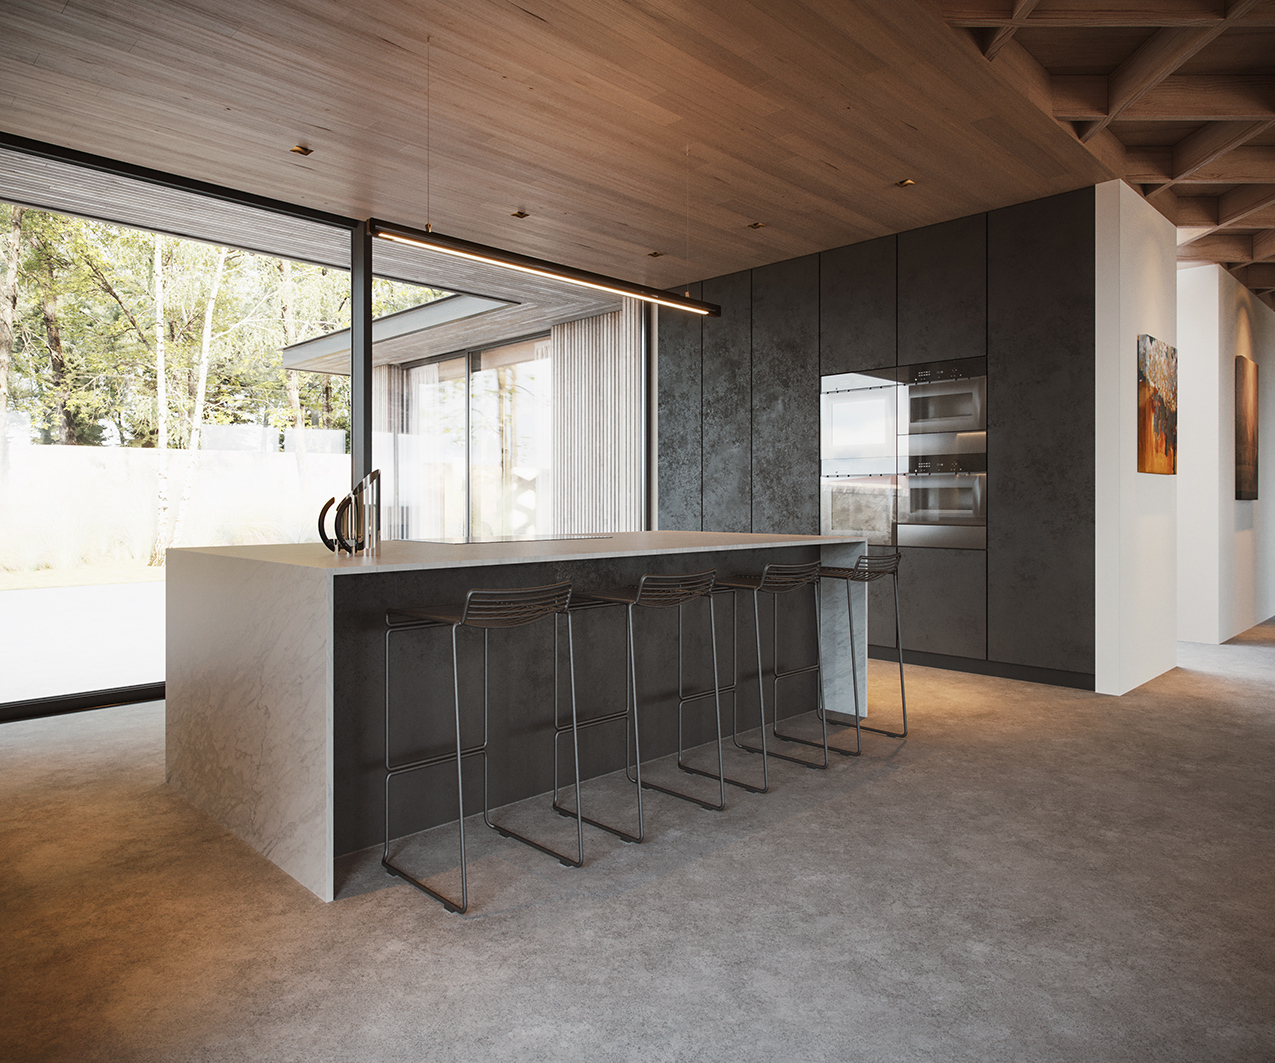 Lynwood-Internal-Brown-and-Brown-architects-web-014_2021-06-03-144848_sece.jpg